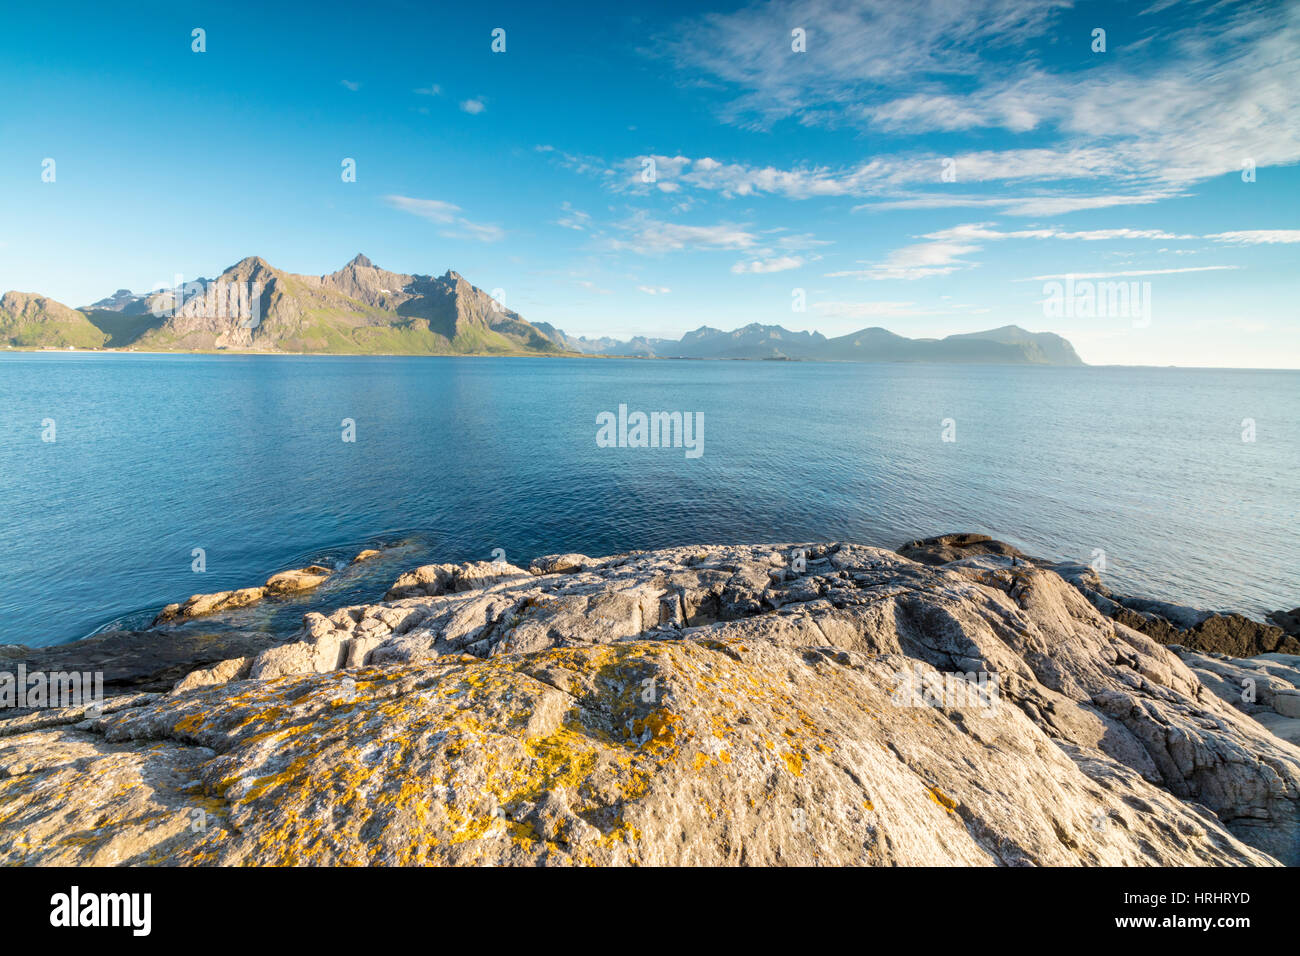 Sun shines on the blue sea and the rocky peaks at night during summer, Vikten, Nord Trondelag, Lofoten, Norway, - Stock Image